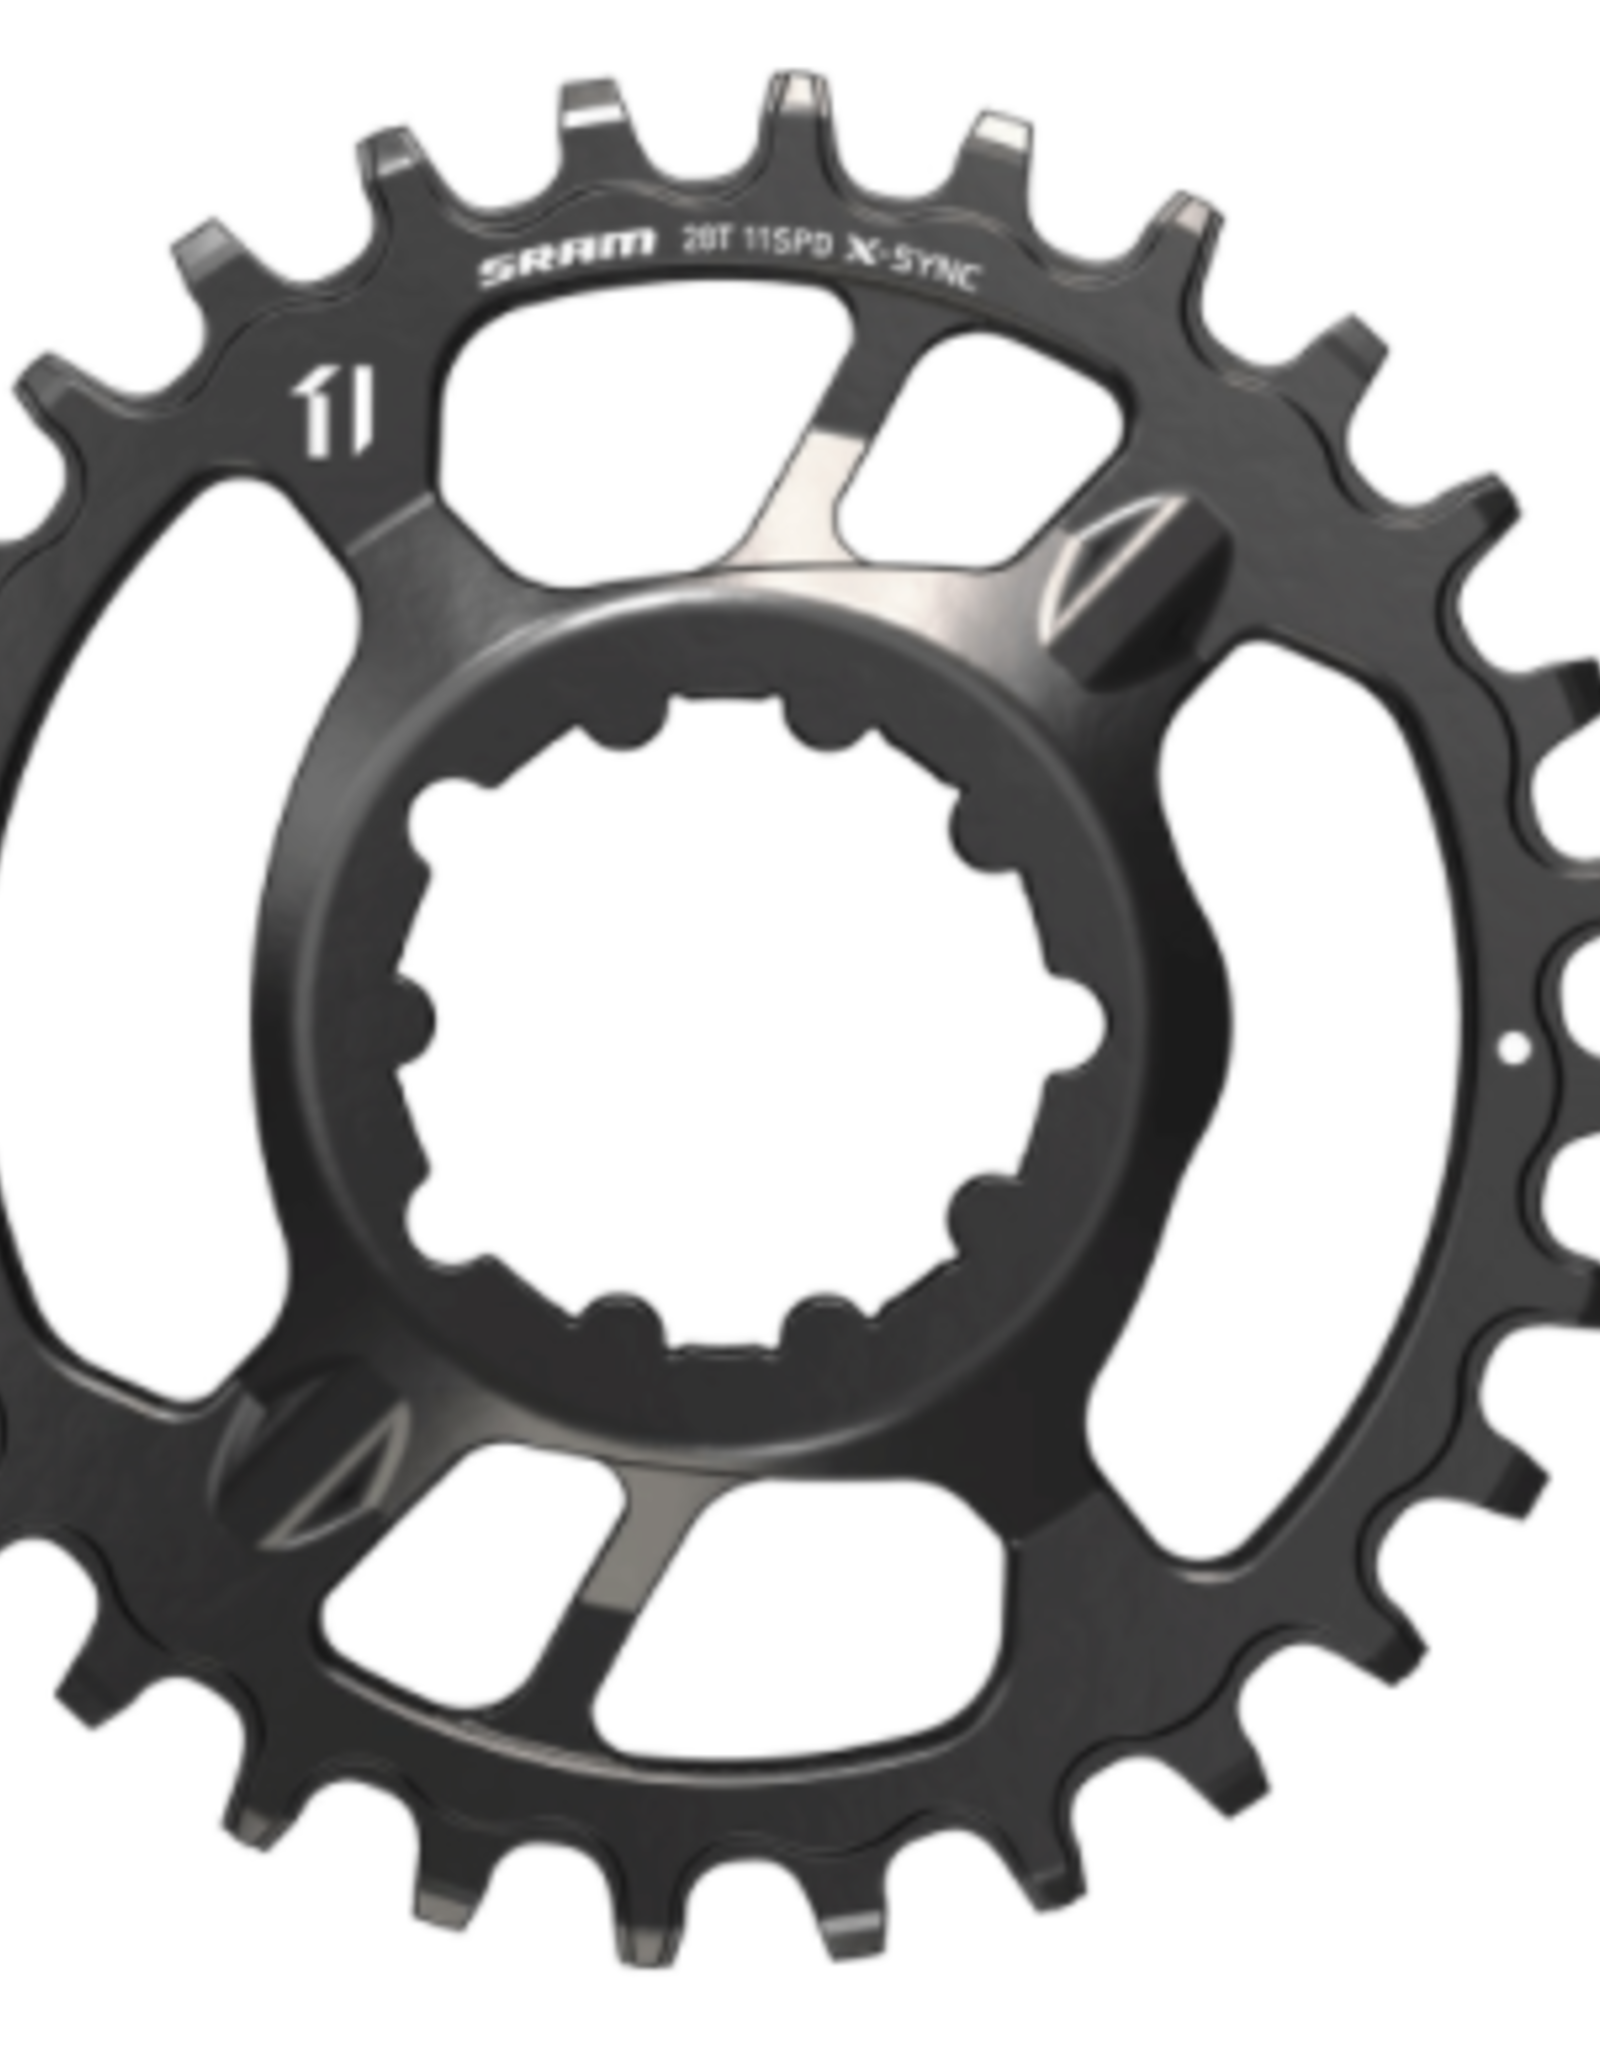 srAM SRAM chain ring X-sync 2 steel direct mount 3mm offset boost eagle 32t